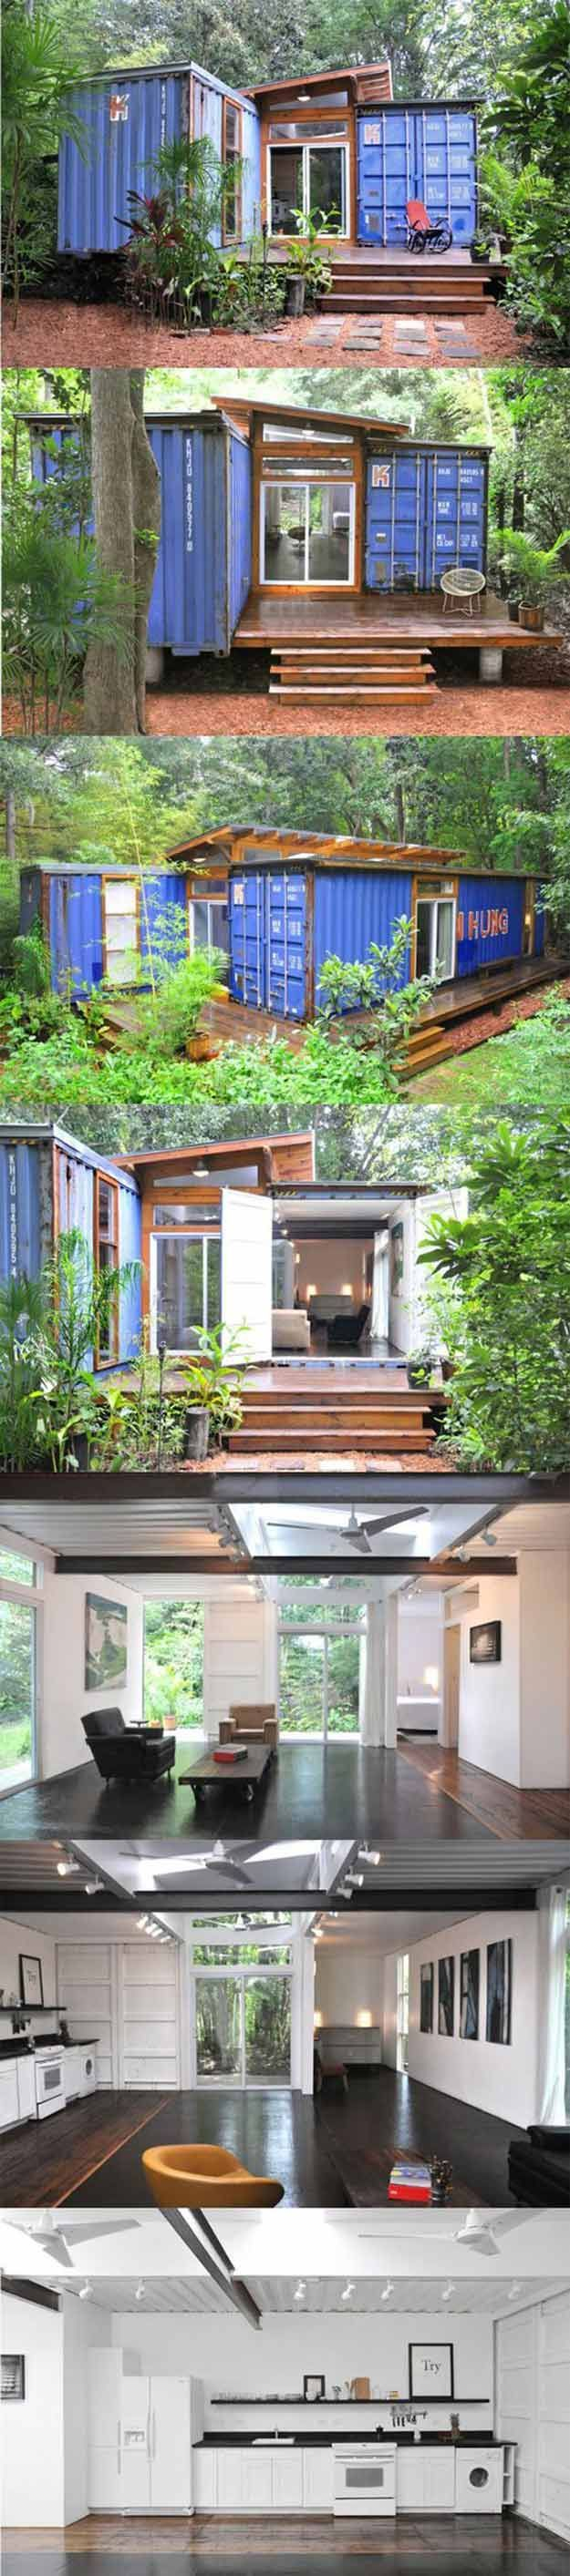 17 Cool Container Homes To Inspire Your Own | DIY Ideas, House And Tiny  Houses